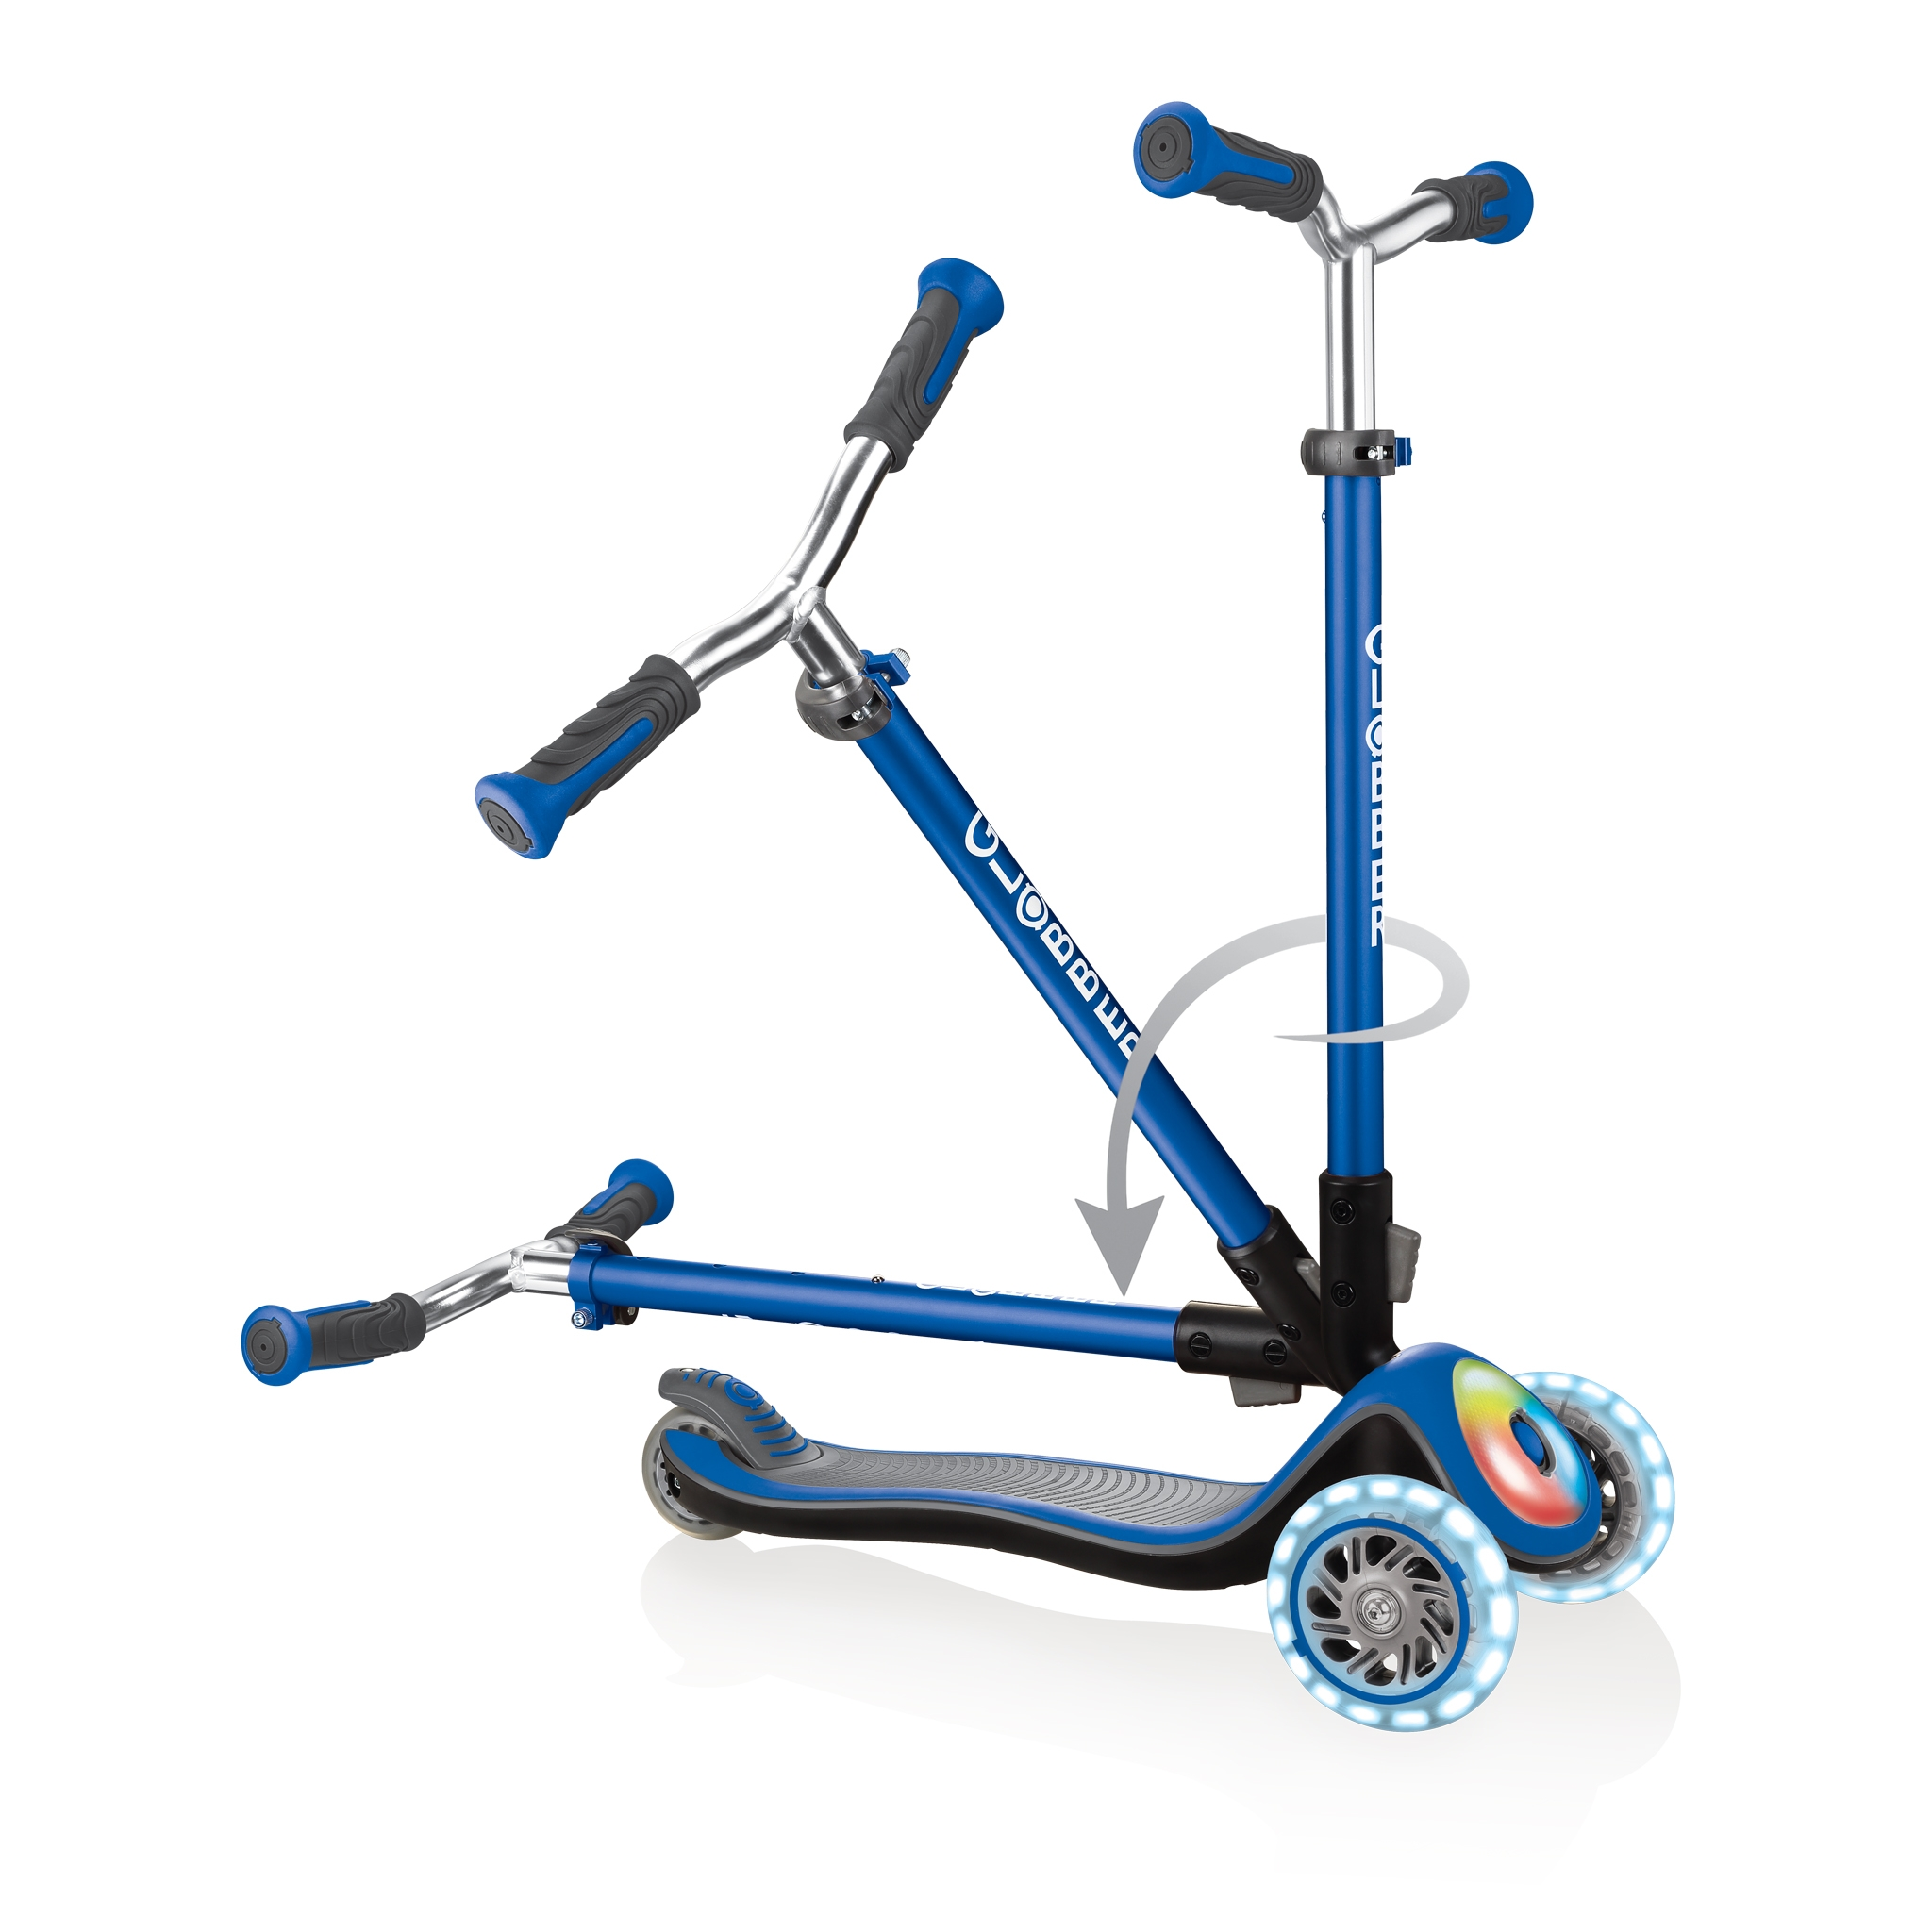 Globber-ELITE-PRIME-best-3-wheel-scooter-for-kids-with-patented-folding-system-navy-blue 3